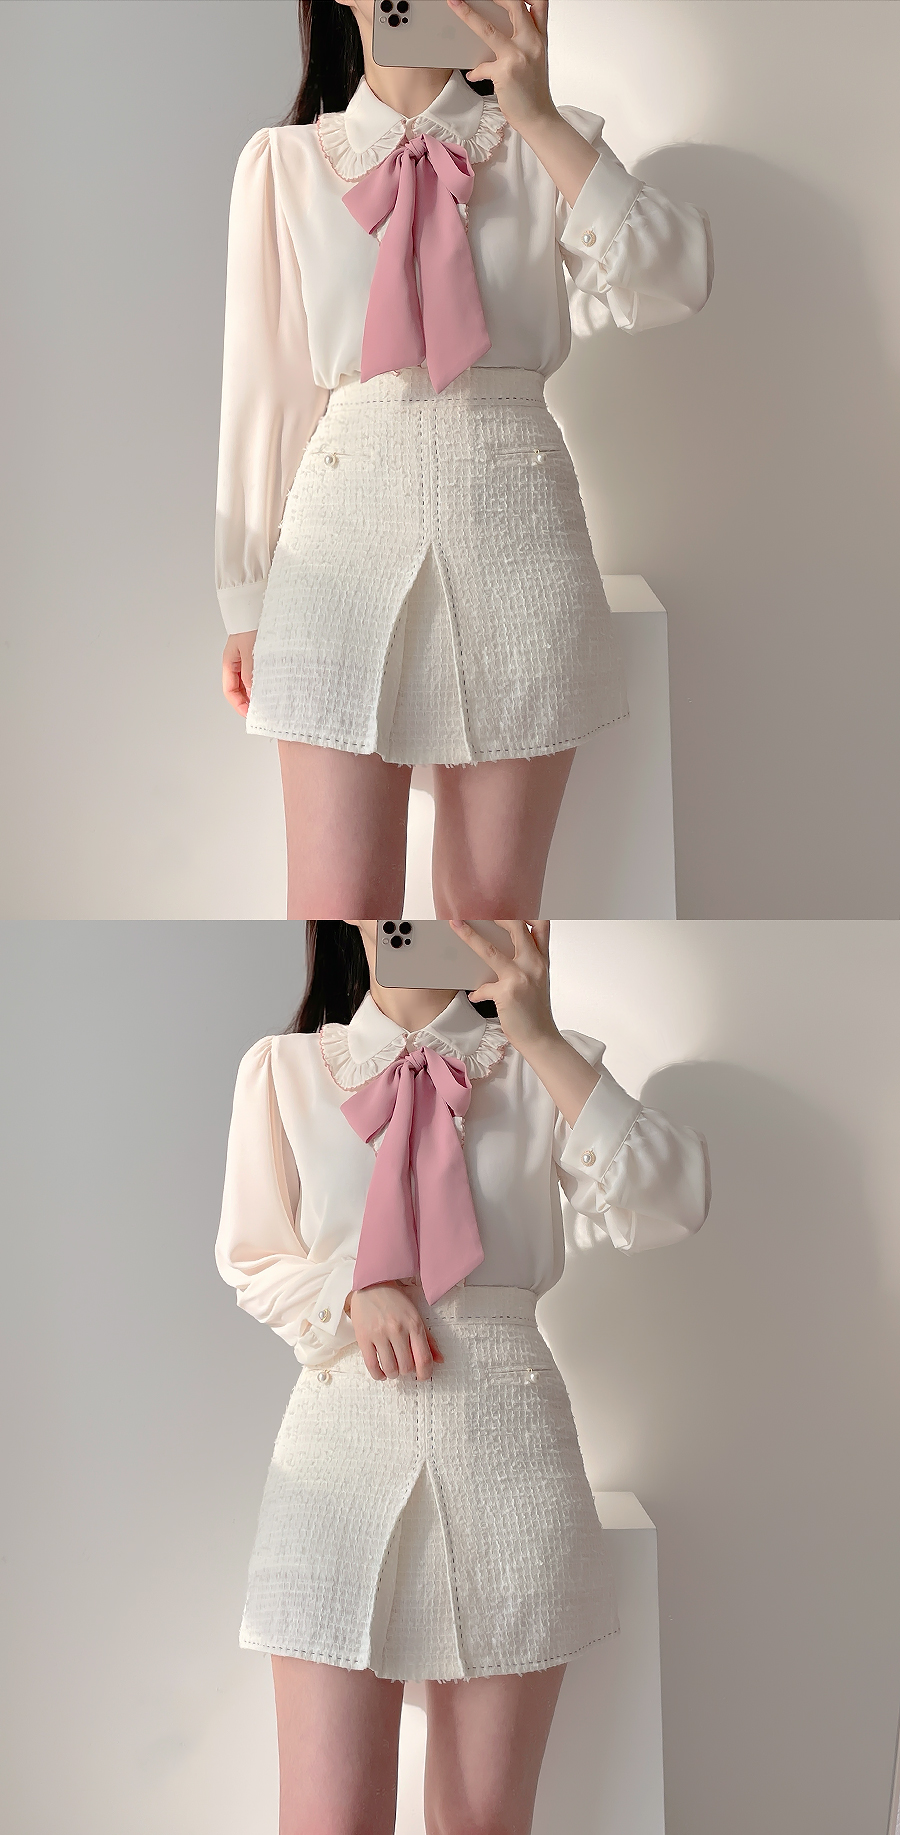 Name stitch pearl skirt pants 2color